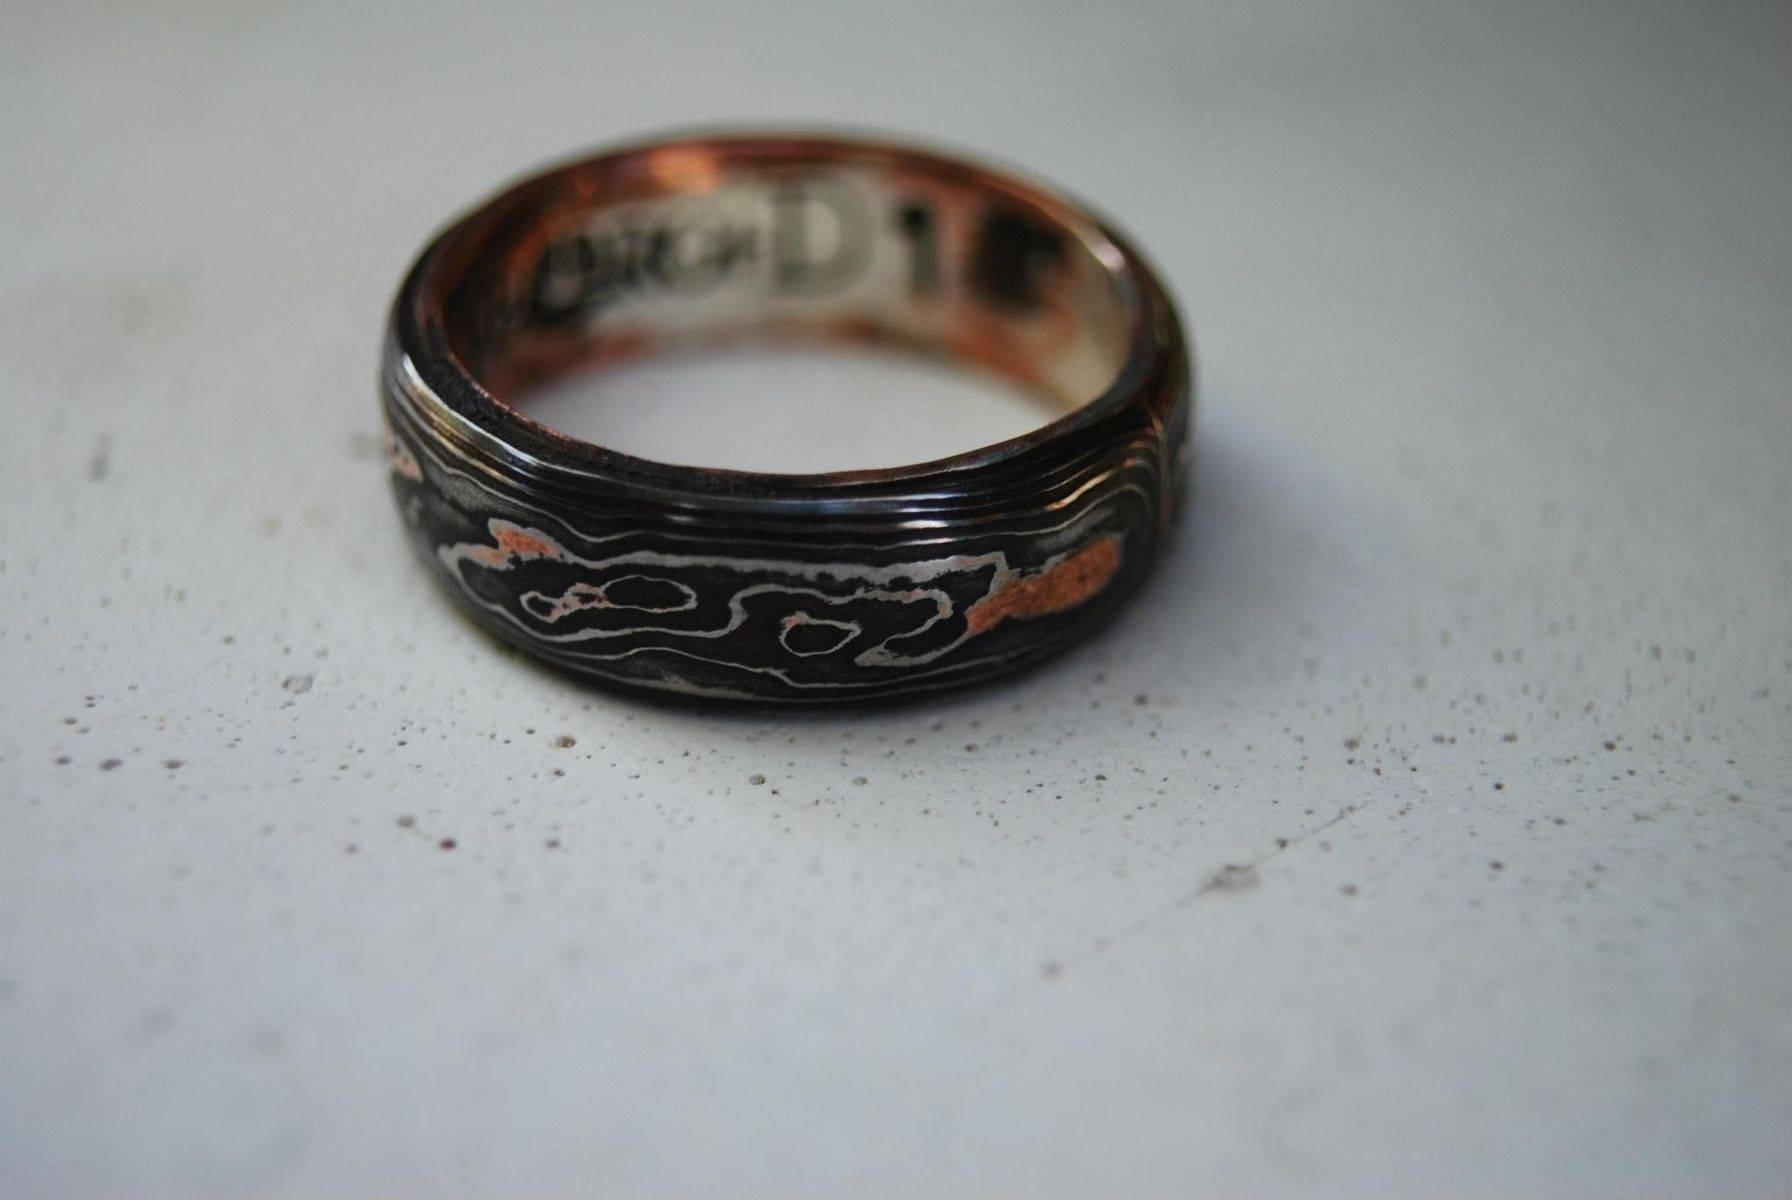 Hand Made Pattern Welded, Damascus, Woodgrain Wedding Band Intended For Wood Grain Men's Wedding Bands (View 6 of 15)